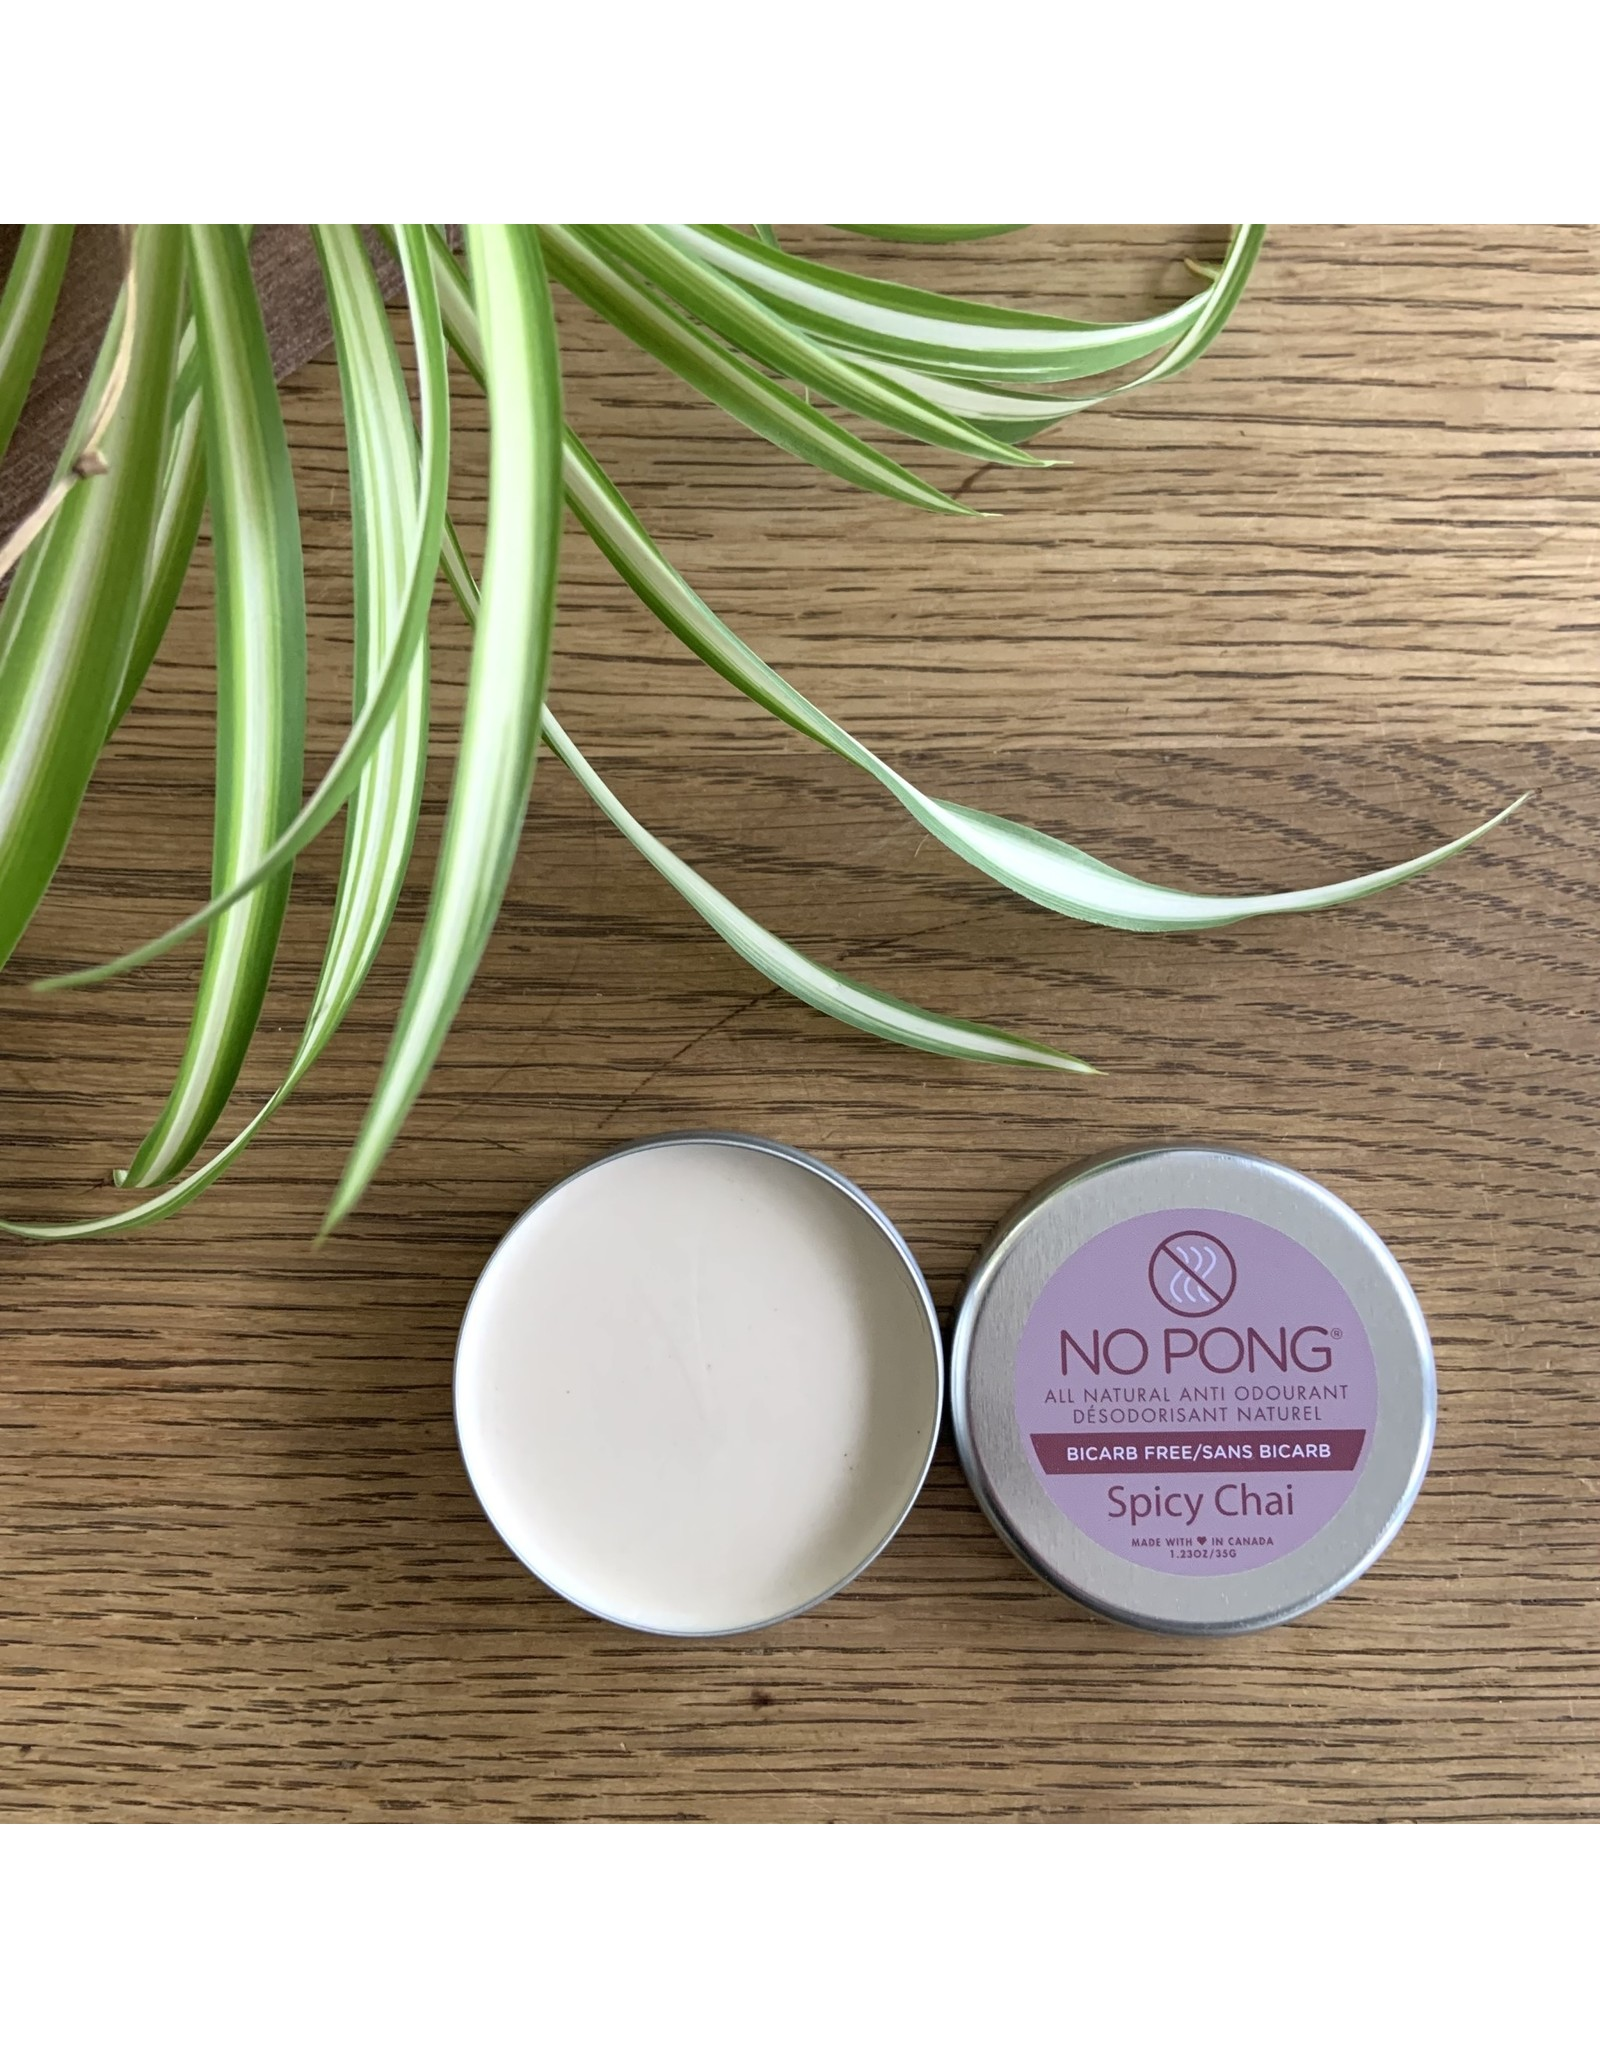 No Pong Deodorant (Anti-Odourant) by No Pong